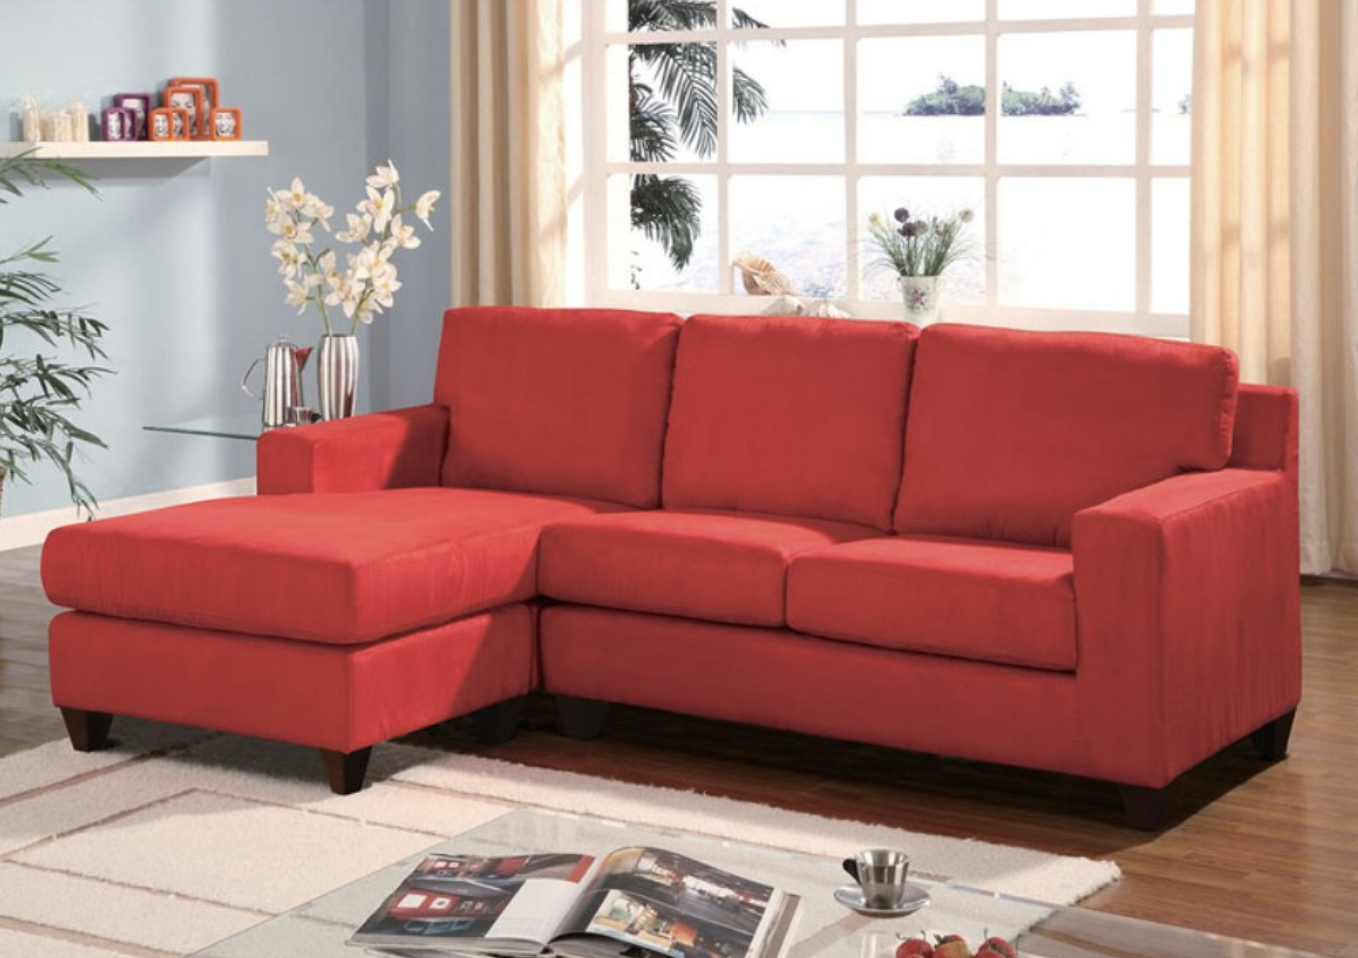 100X80 Sectional Sofas With Regard To Most Popular 75 Modern Sectional Sofas For Small Spaces (2018) (View 3 of 20)